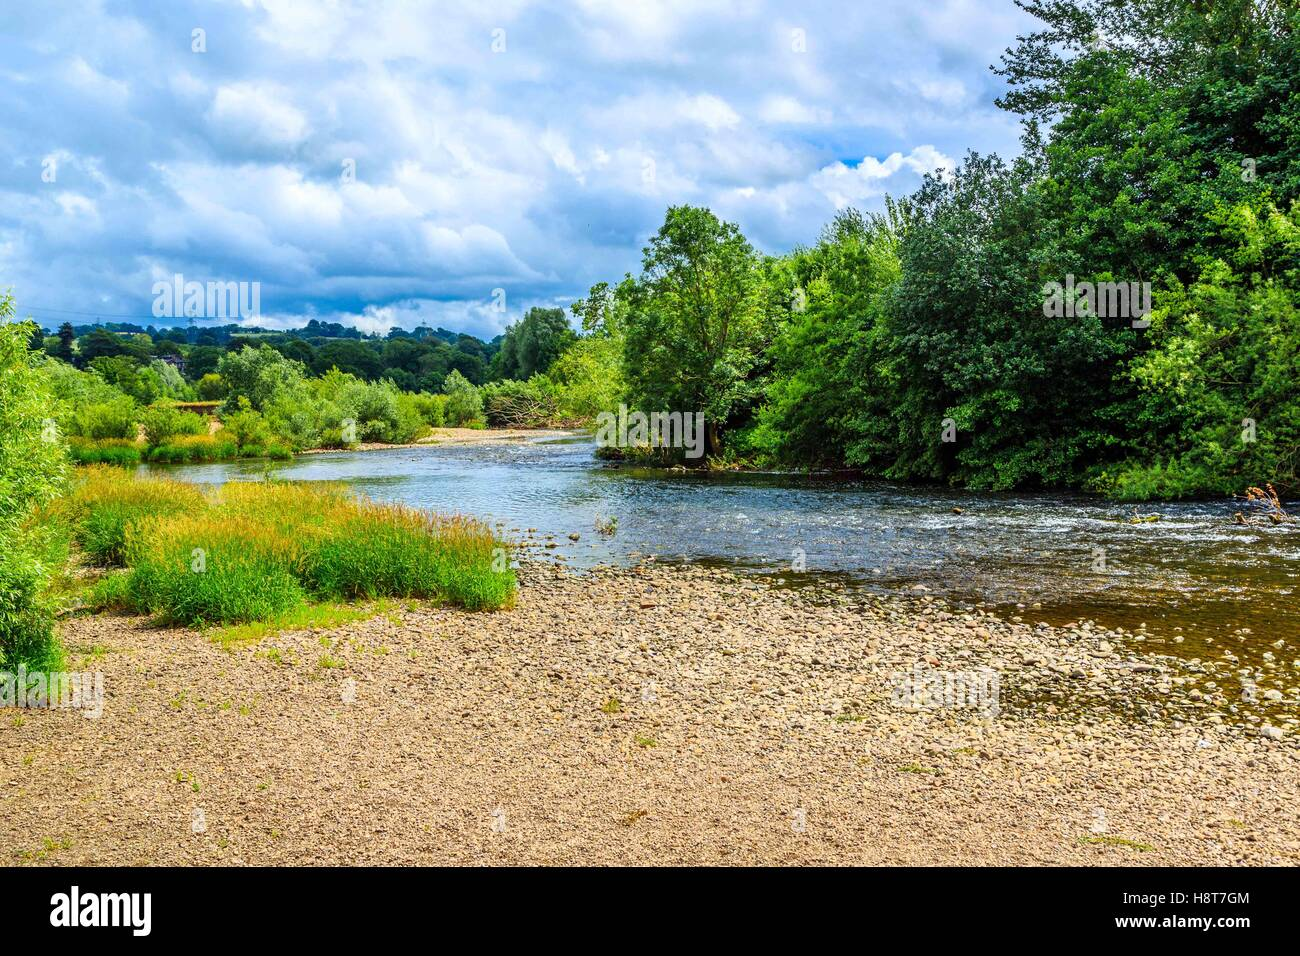 A lovely river in Shropshire, England Stock Photo